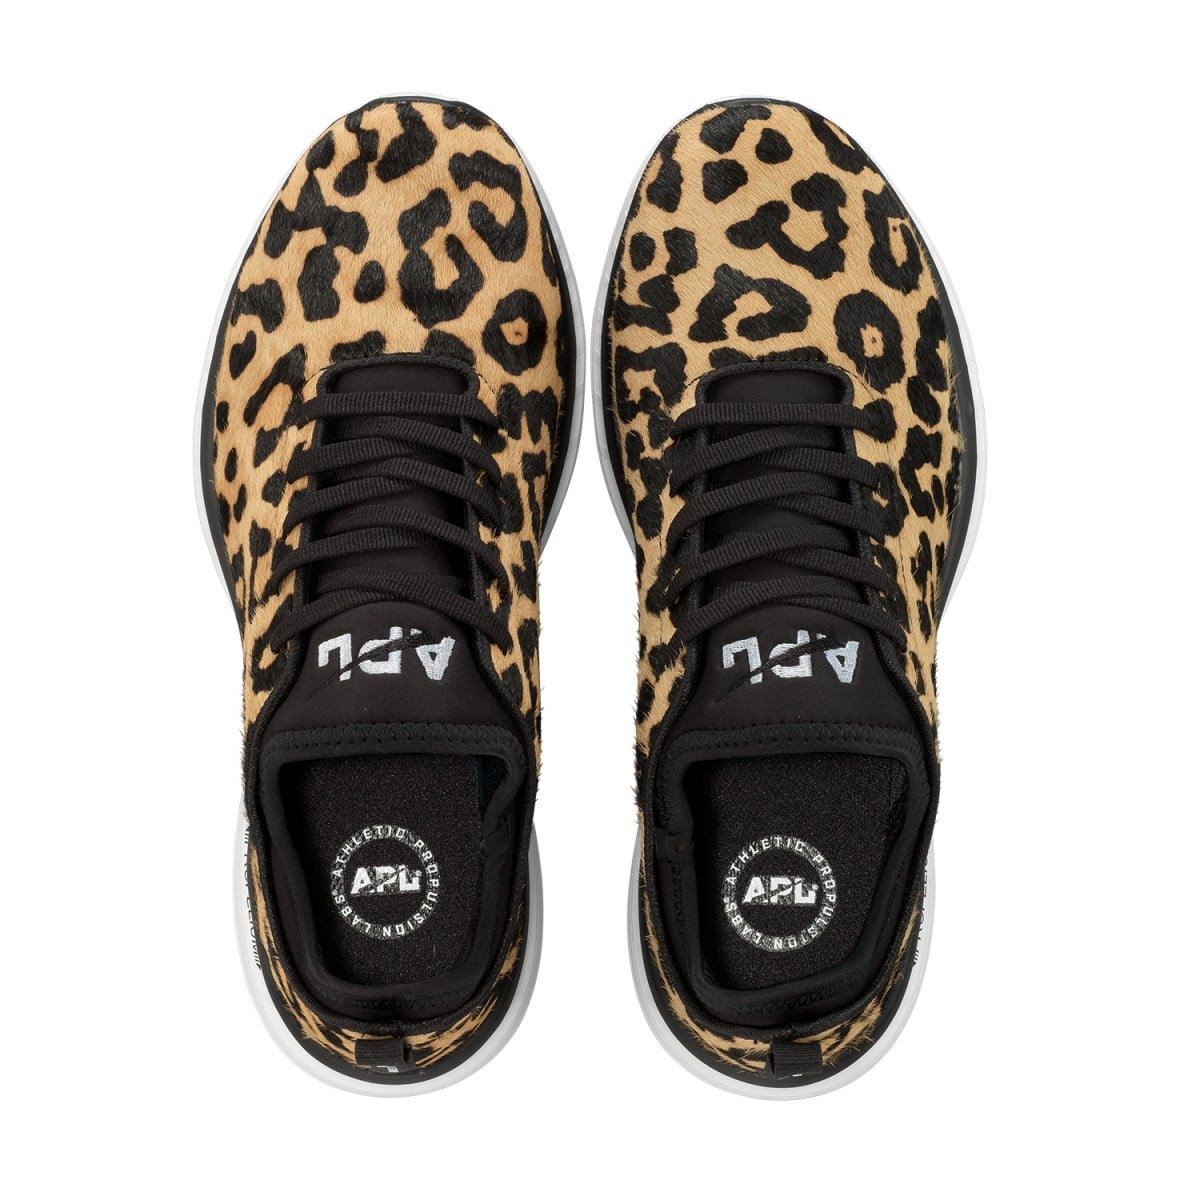 16c9f900010b If you're a fan of all things leopard print, you've gotta admit these are  fierce. Leopard Print APL Phantom ...